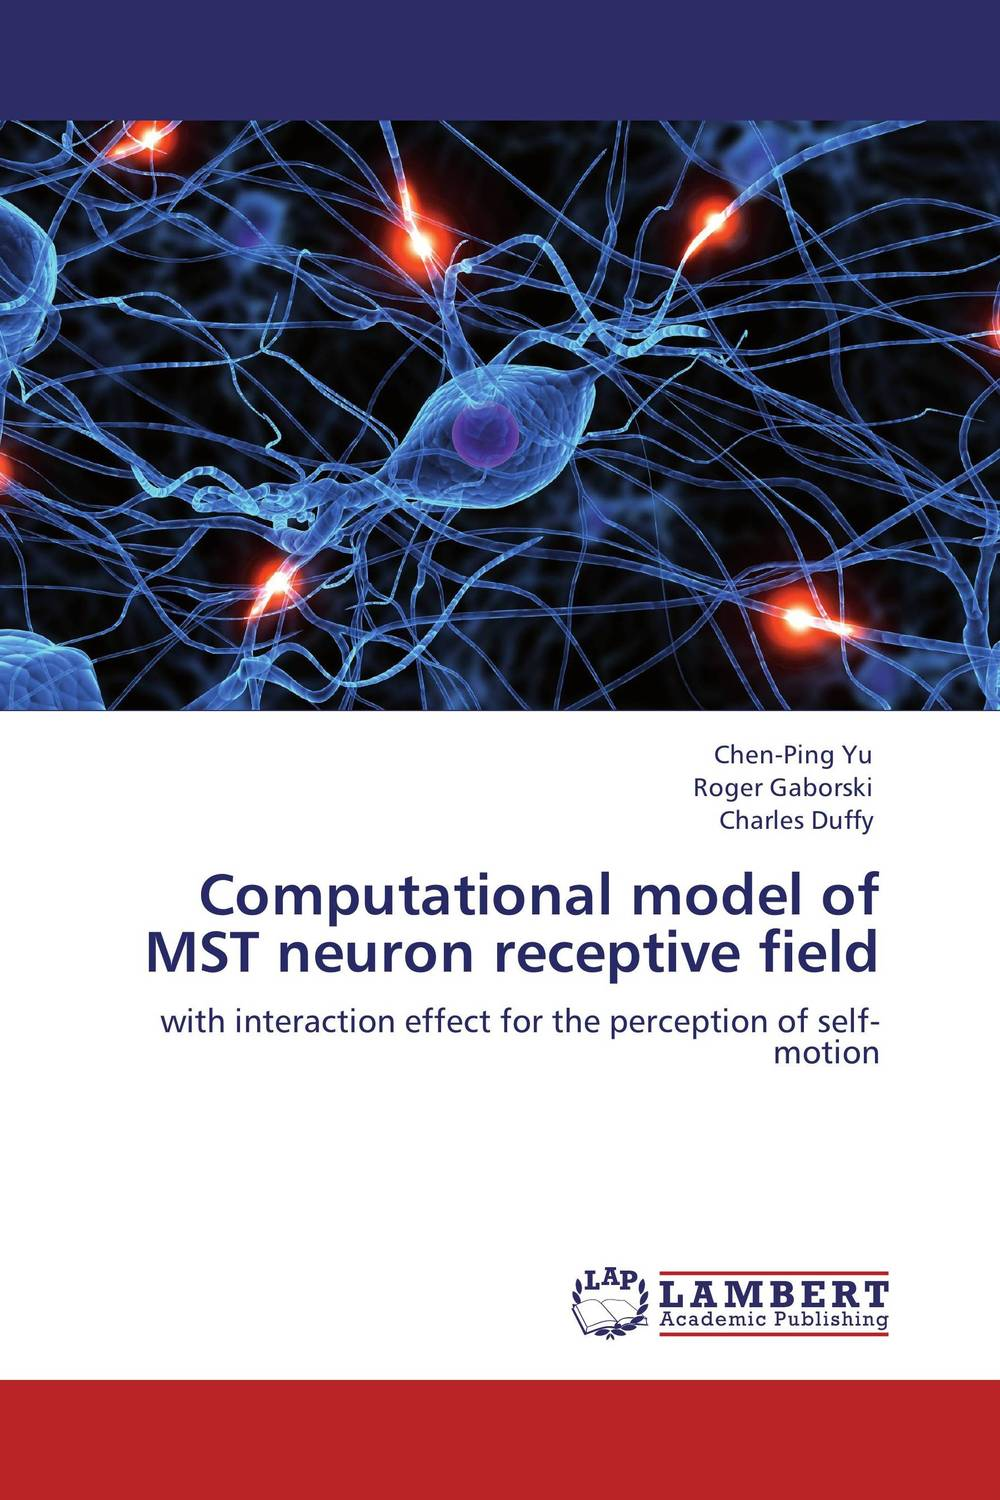 Computational model of MST neuron receptive field web personalization models using computational intelligence